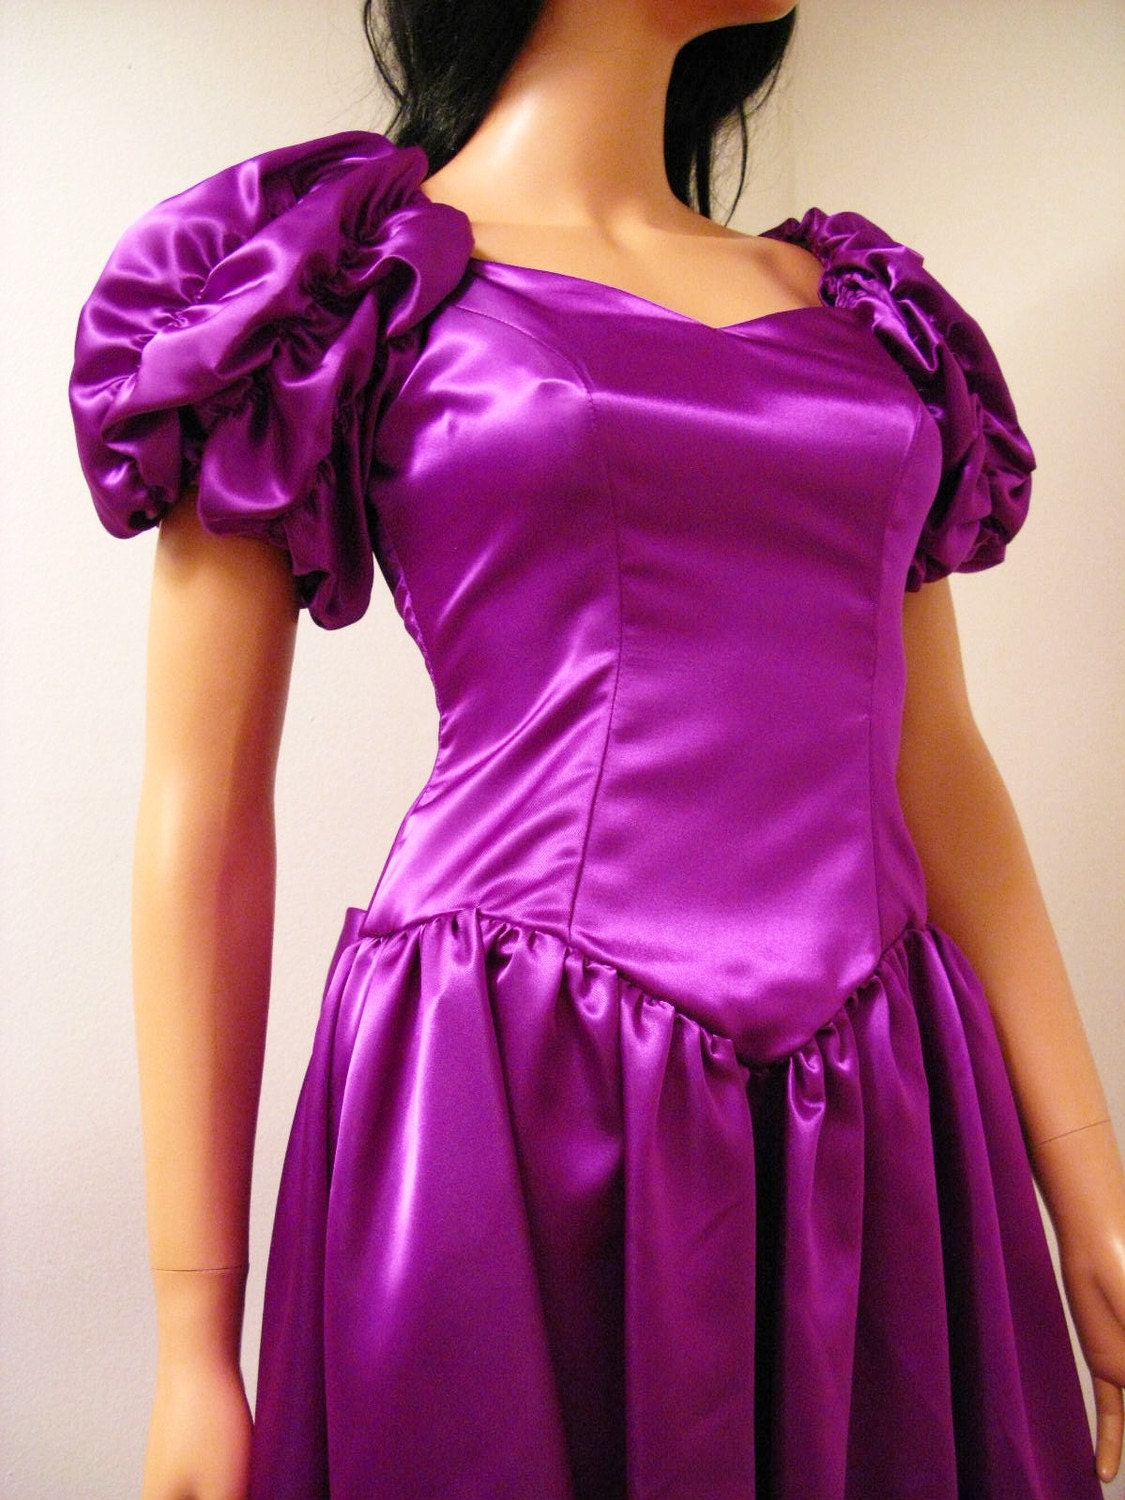 Purple Satin 80s Prom Dress Vintage 1980s Long Formal Gown | 1125 x 1500 jpeg 349kB